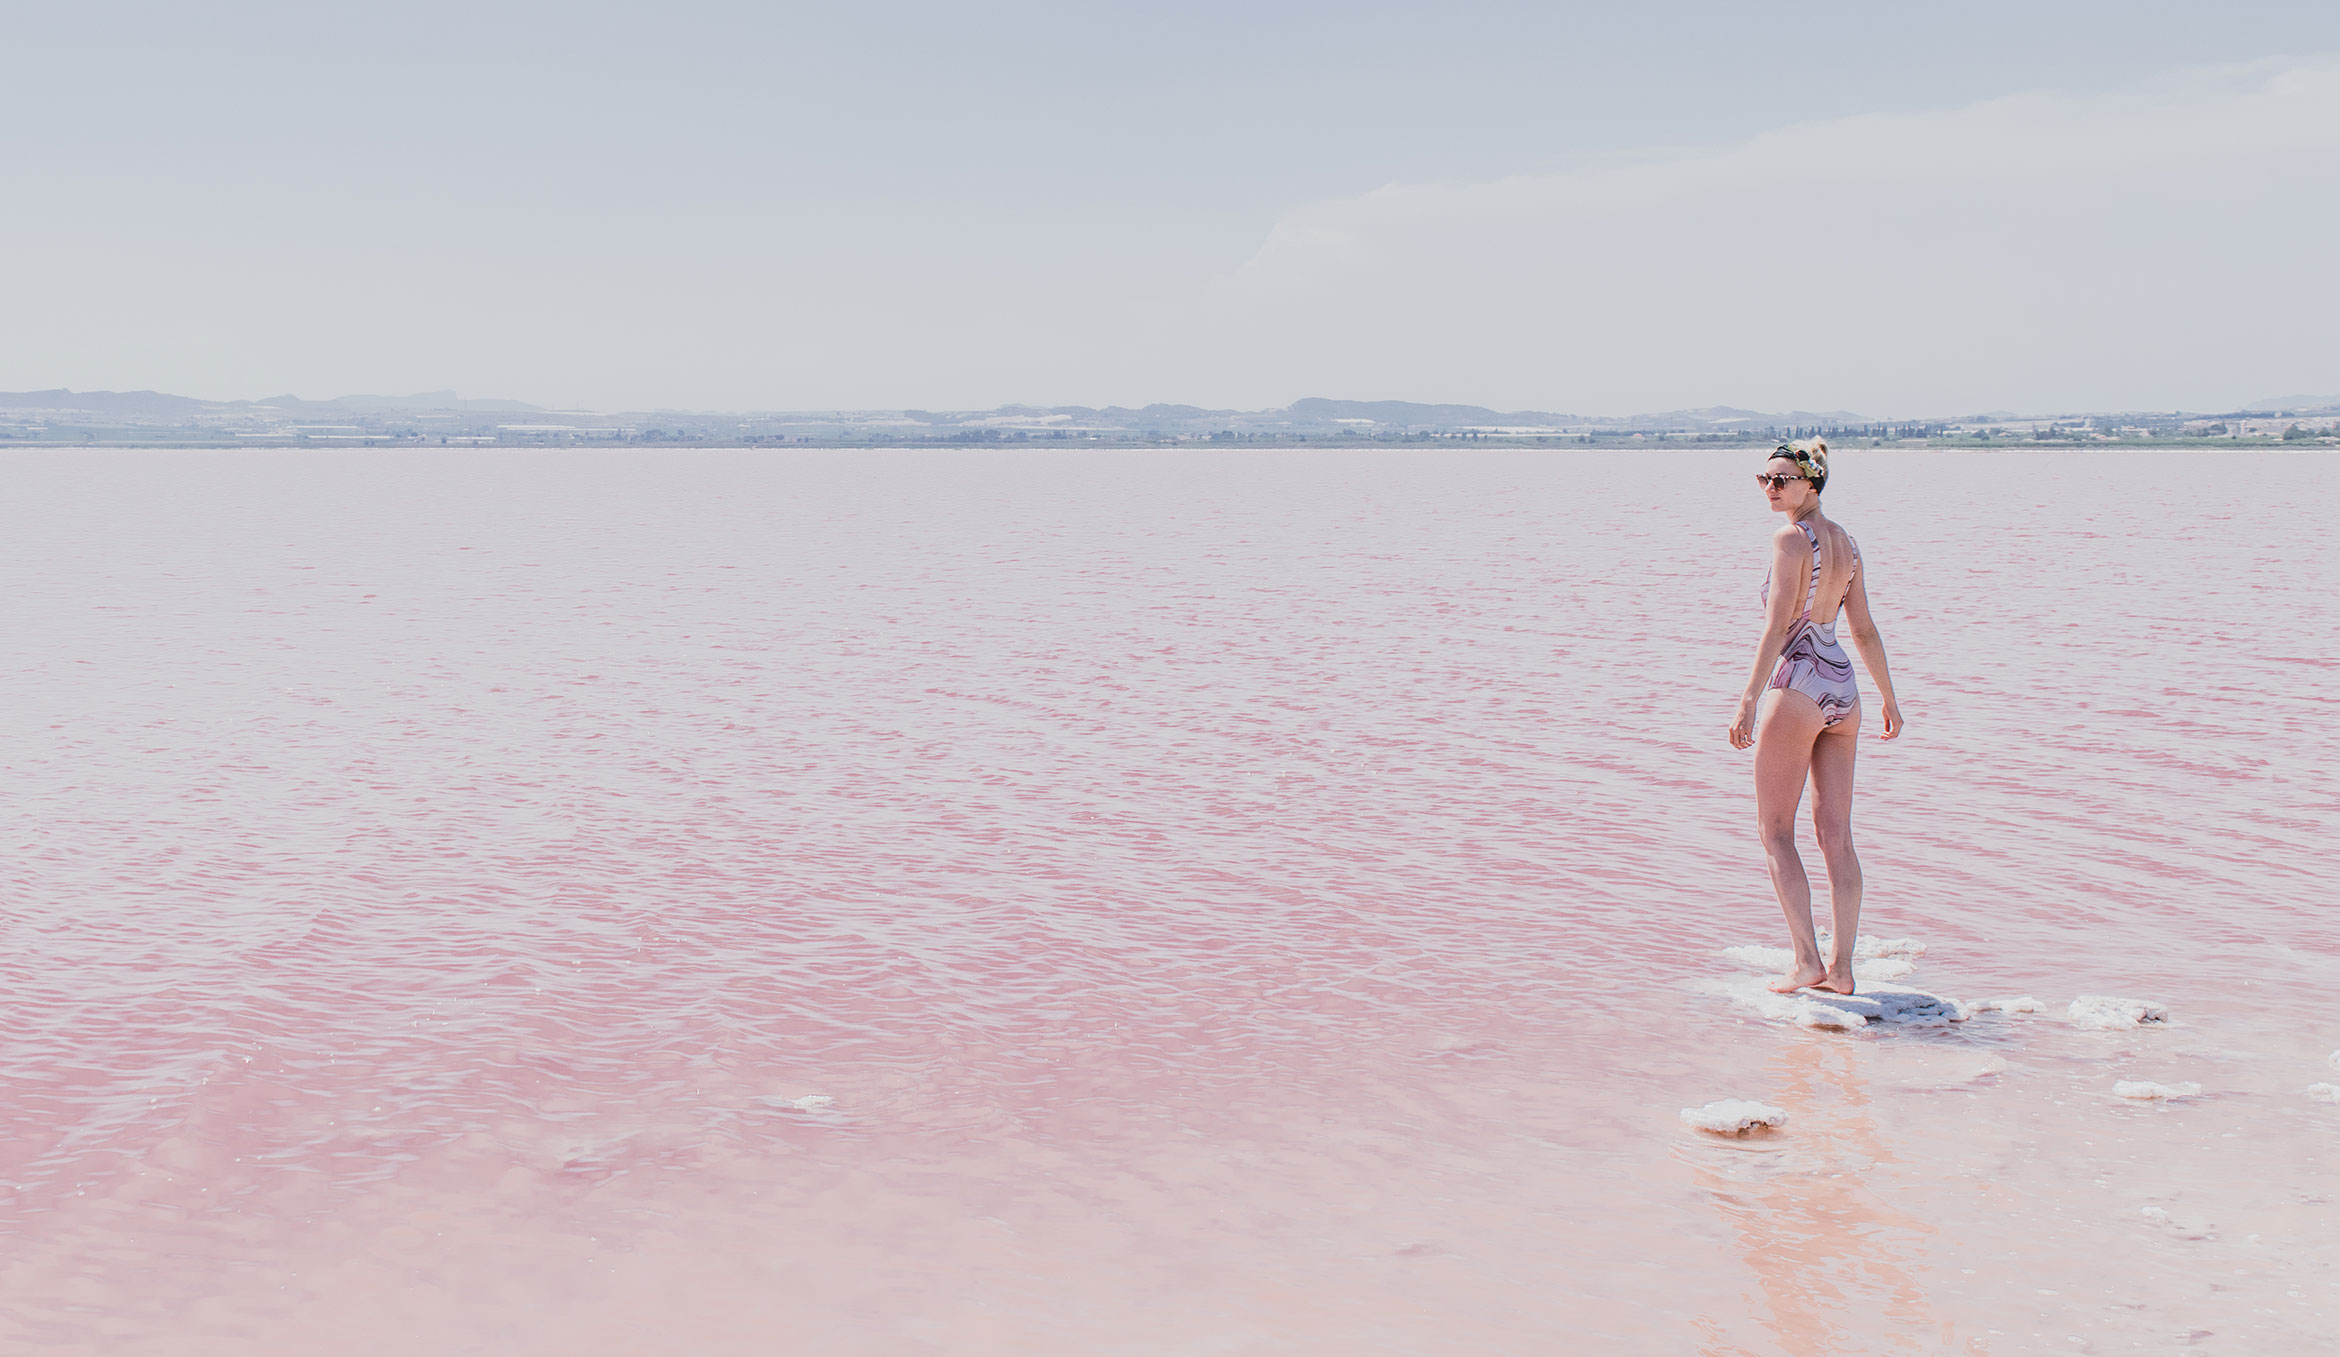 Barcelona to Madrid Road Trip - Laguna Salada, Torrevieja, Spain (Pink Salt Lake)